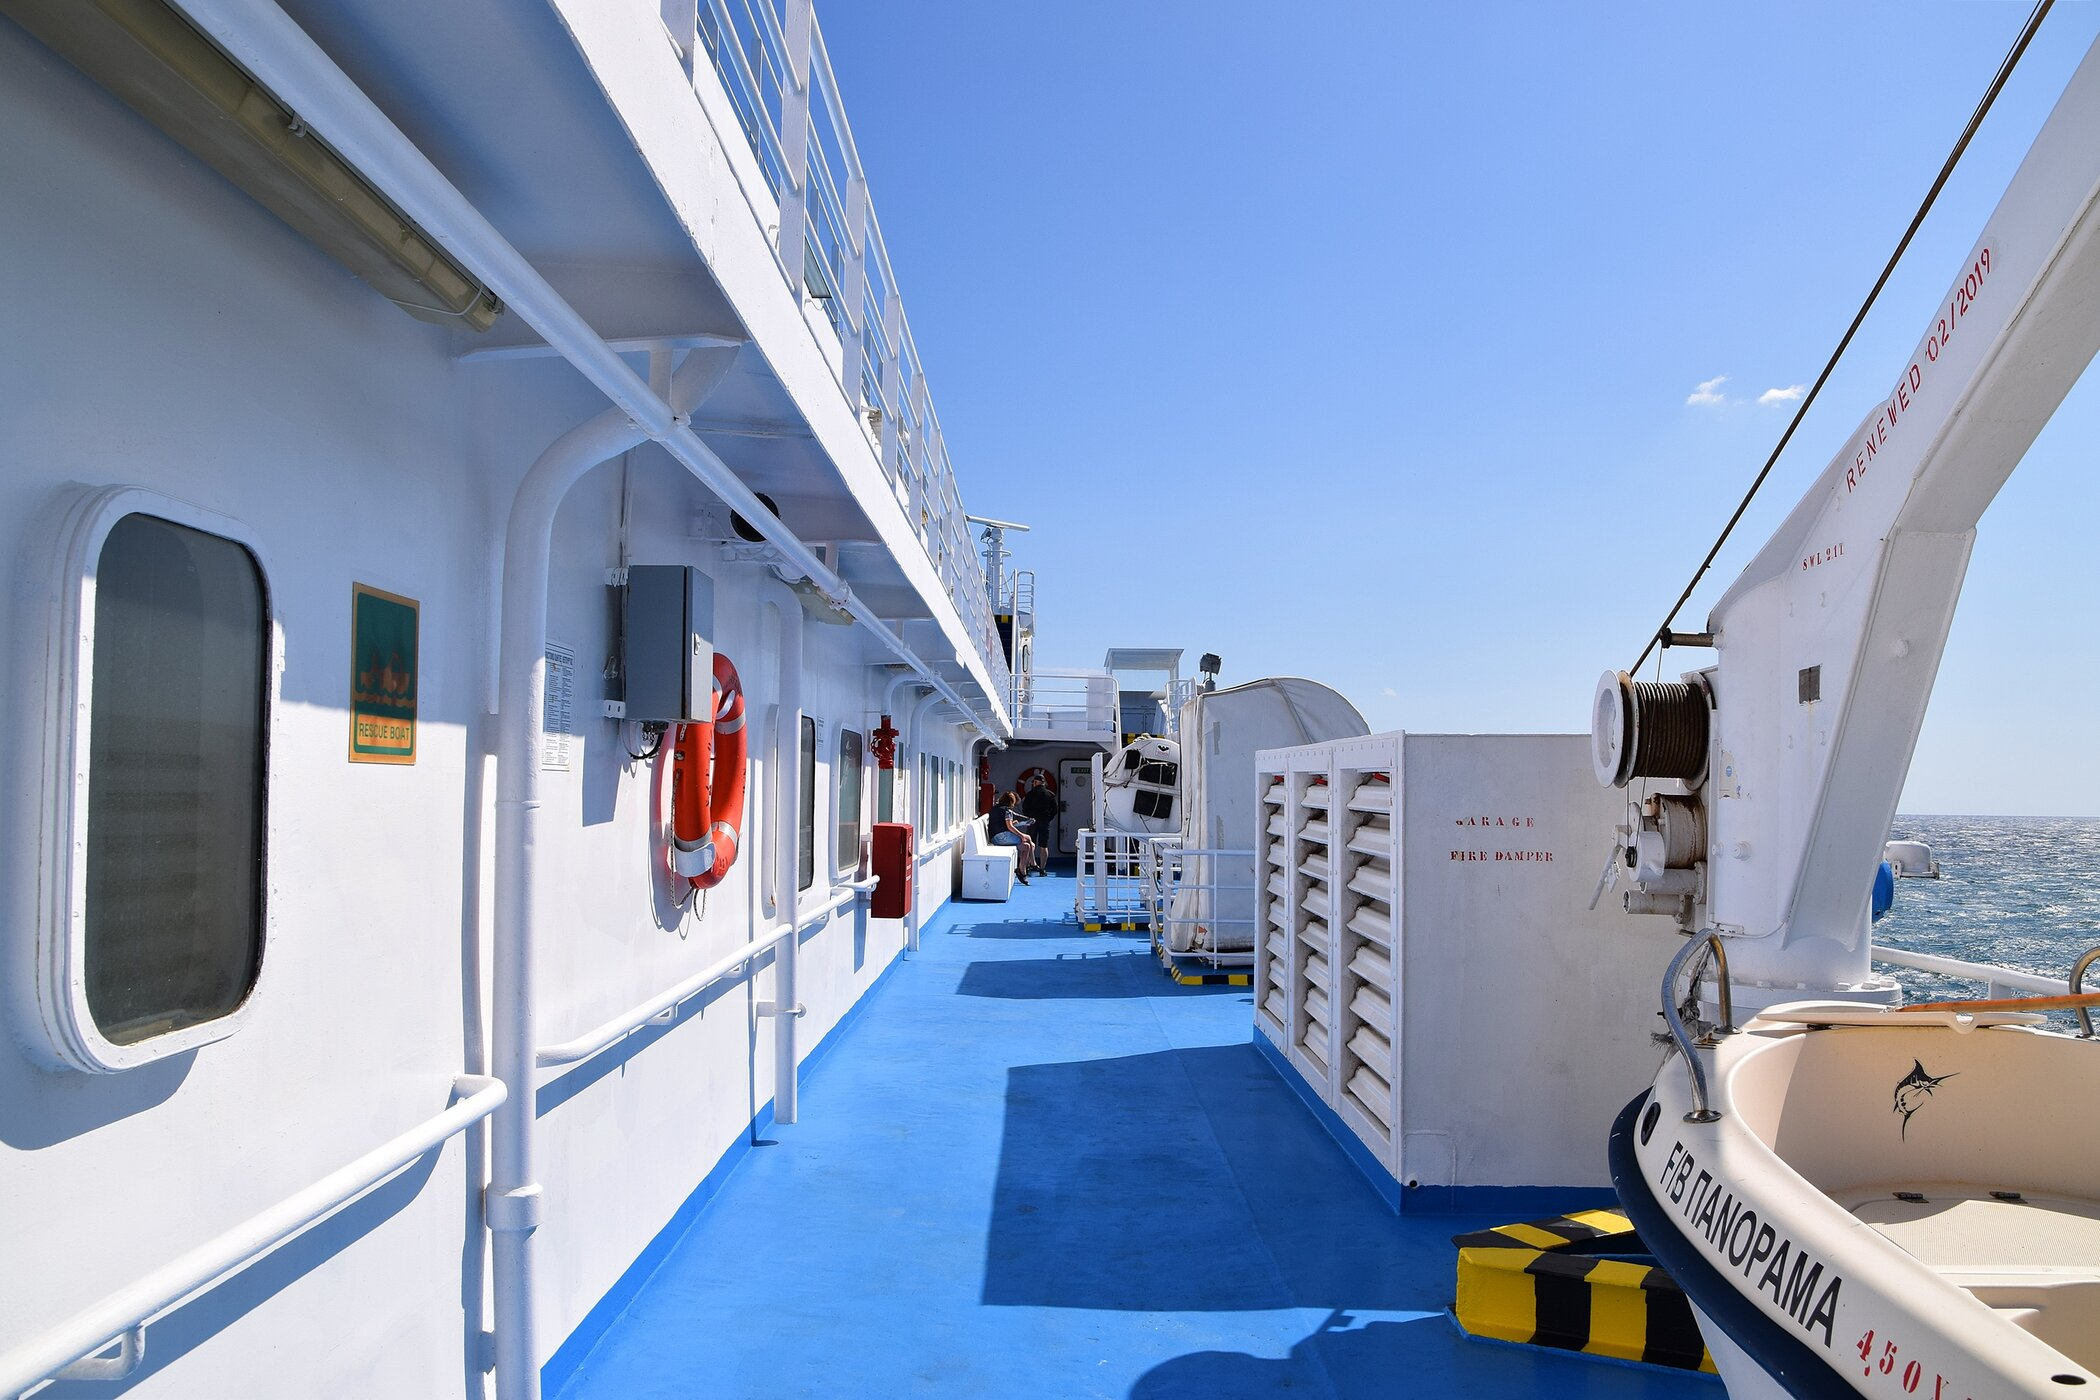 Panorama Stbd Side Deck 5 21/9/2019